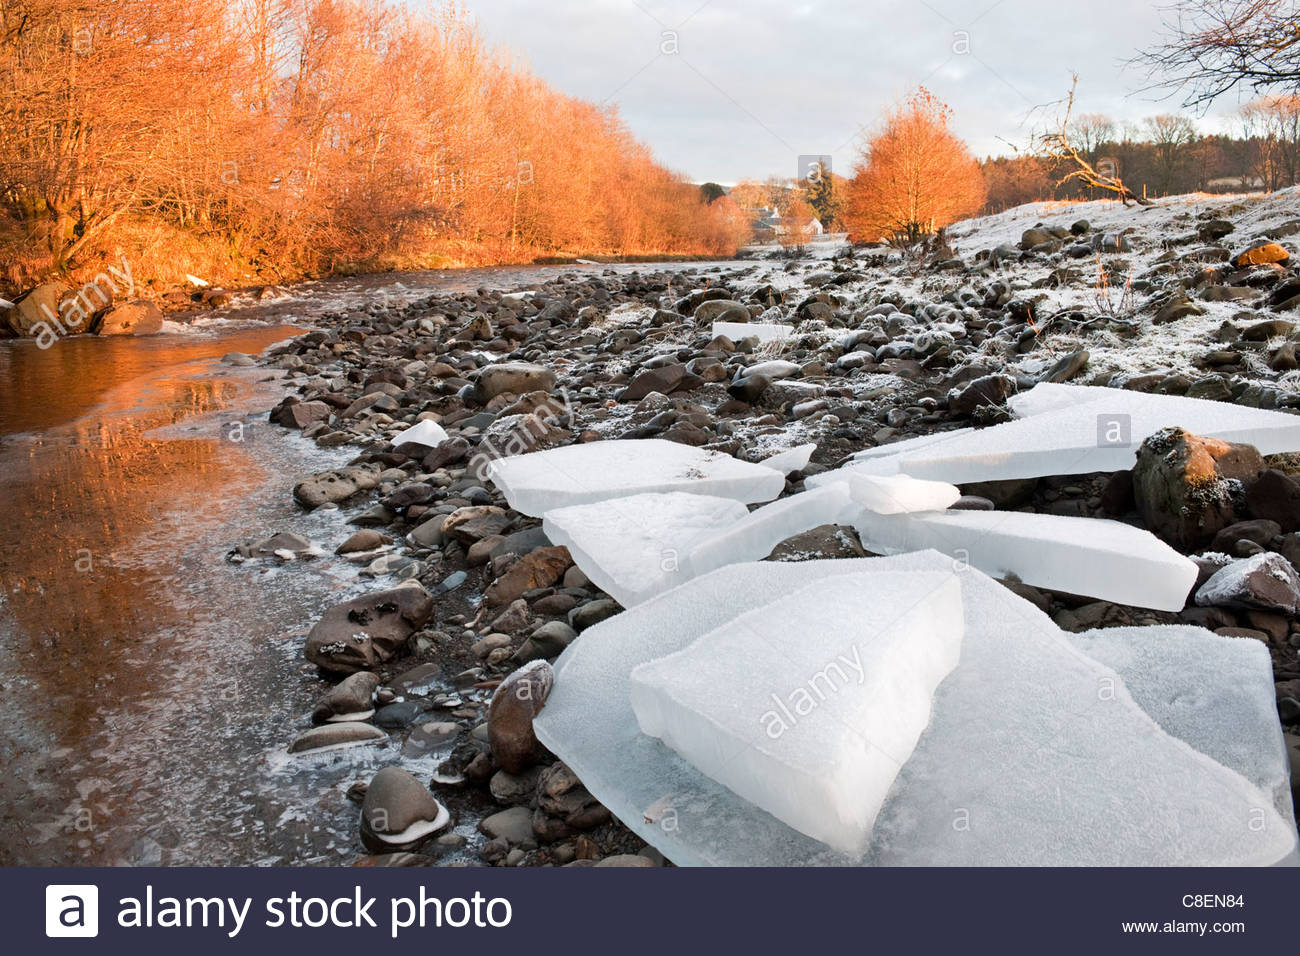 Blocks of pack ice on the banks of the River Stinchar, Ayrshire, Scotland Stock Photo